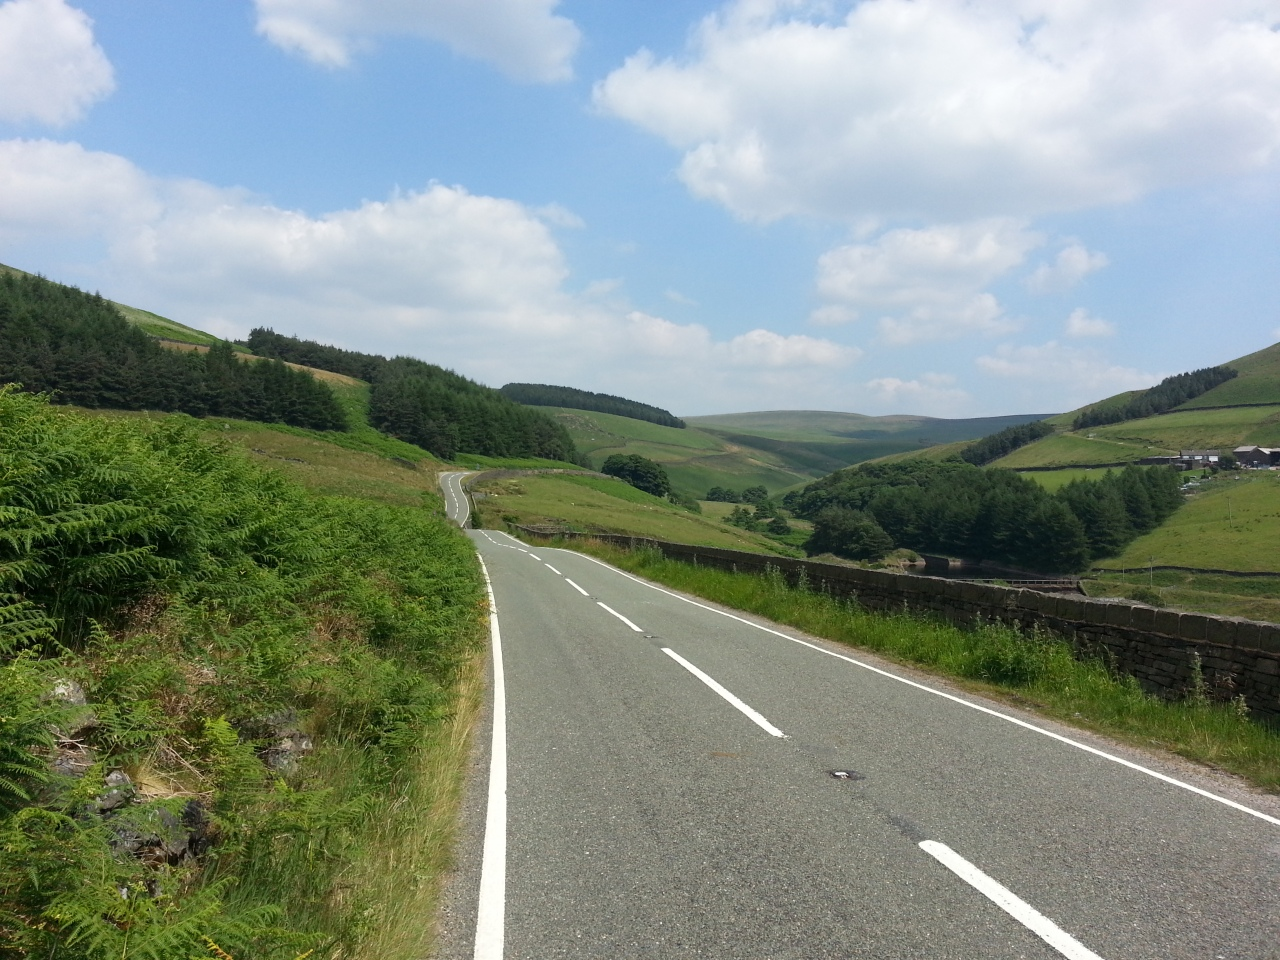 Derbyshire into Yorkshire... beautiful roads and stunning scenery.